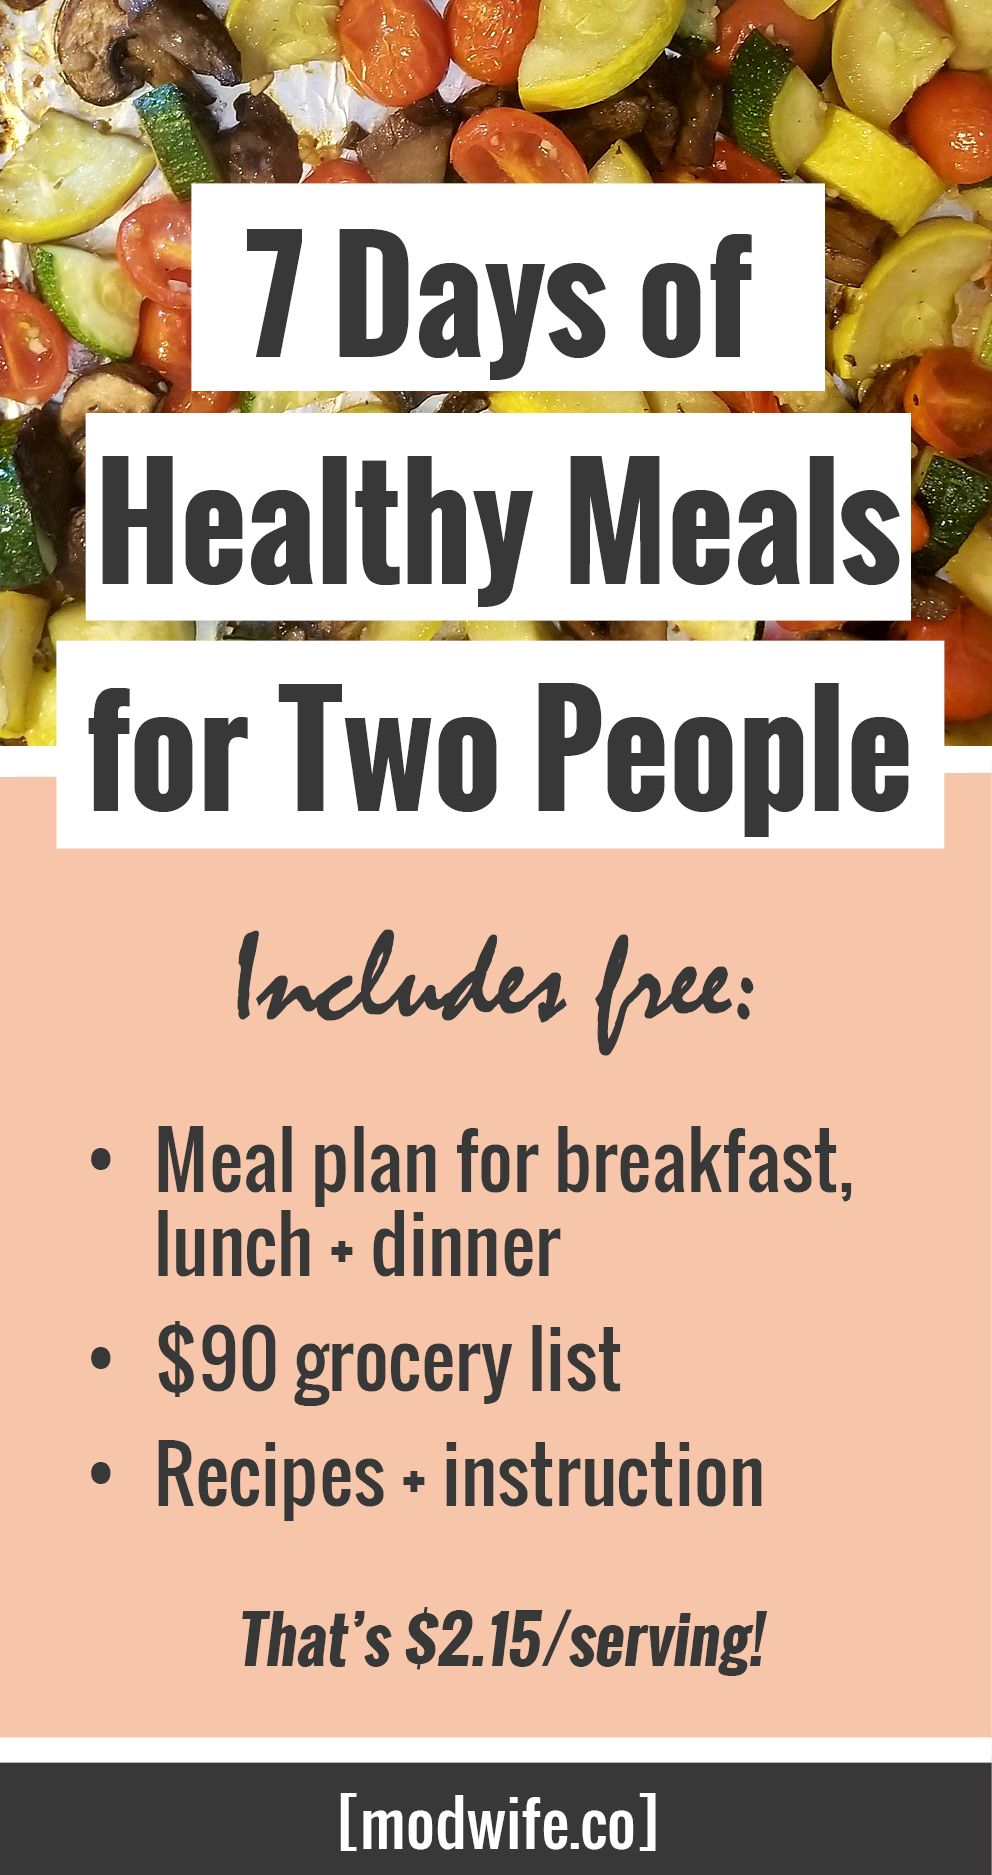 Cheap Healthy Meals For A Family Of Two Budget Friendly Healthy Meals Modwife Co Marriage Li Cheap Healthy Meals Healthy Meals For Two Healthy Recipes